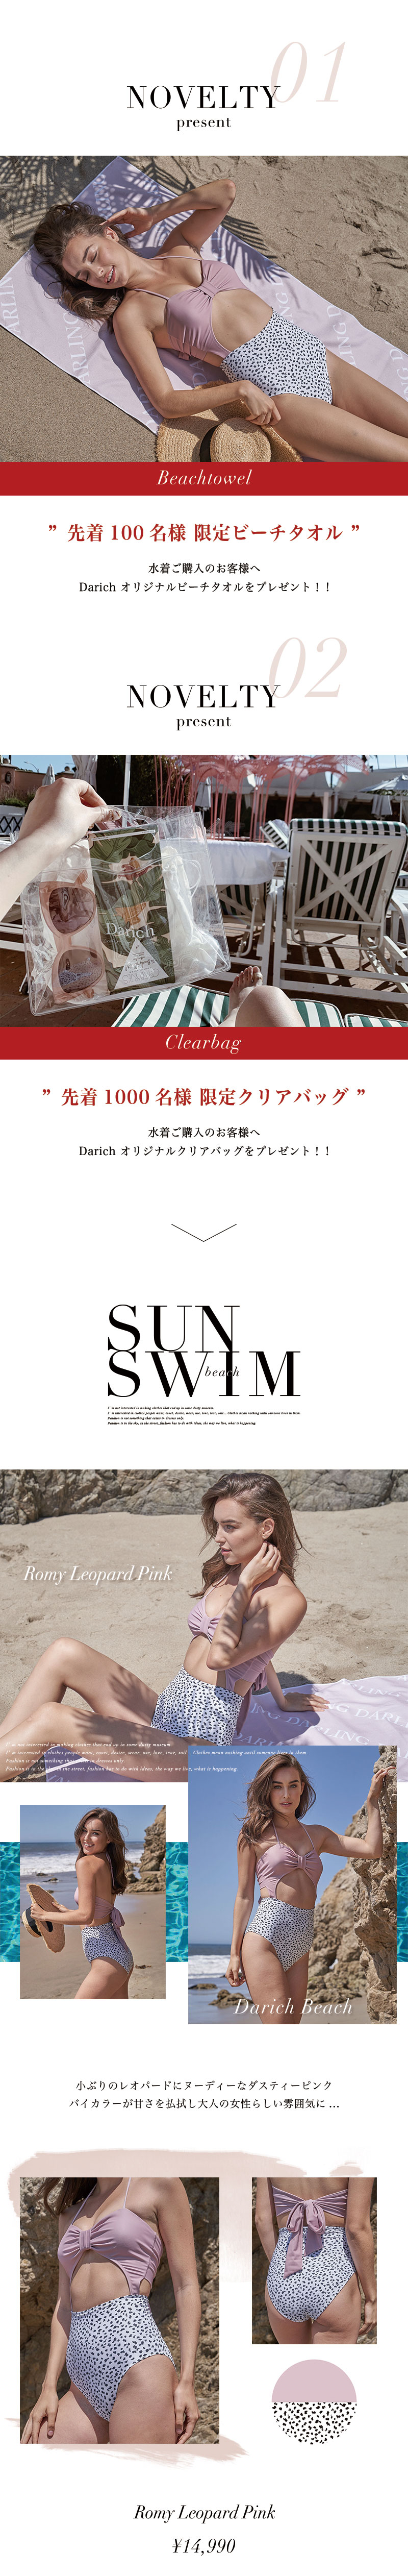 19SS SWIMWEAR COLLECTION特集3